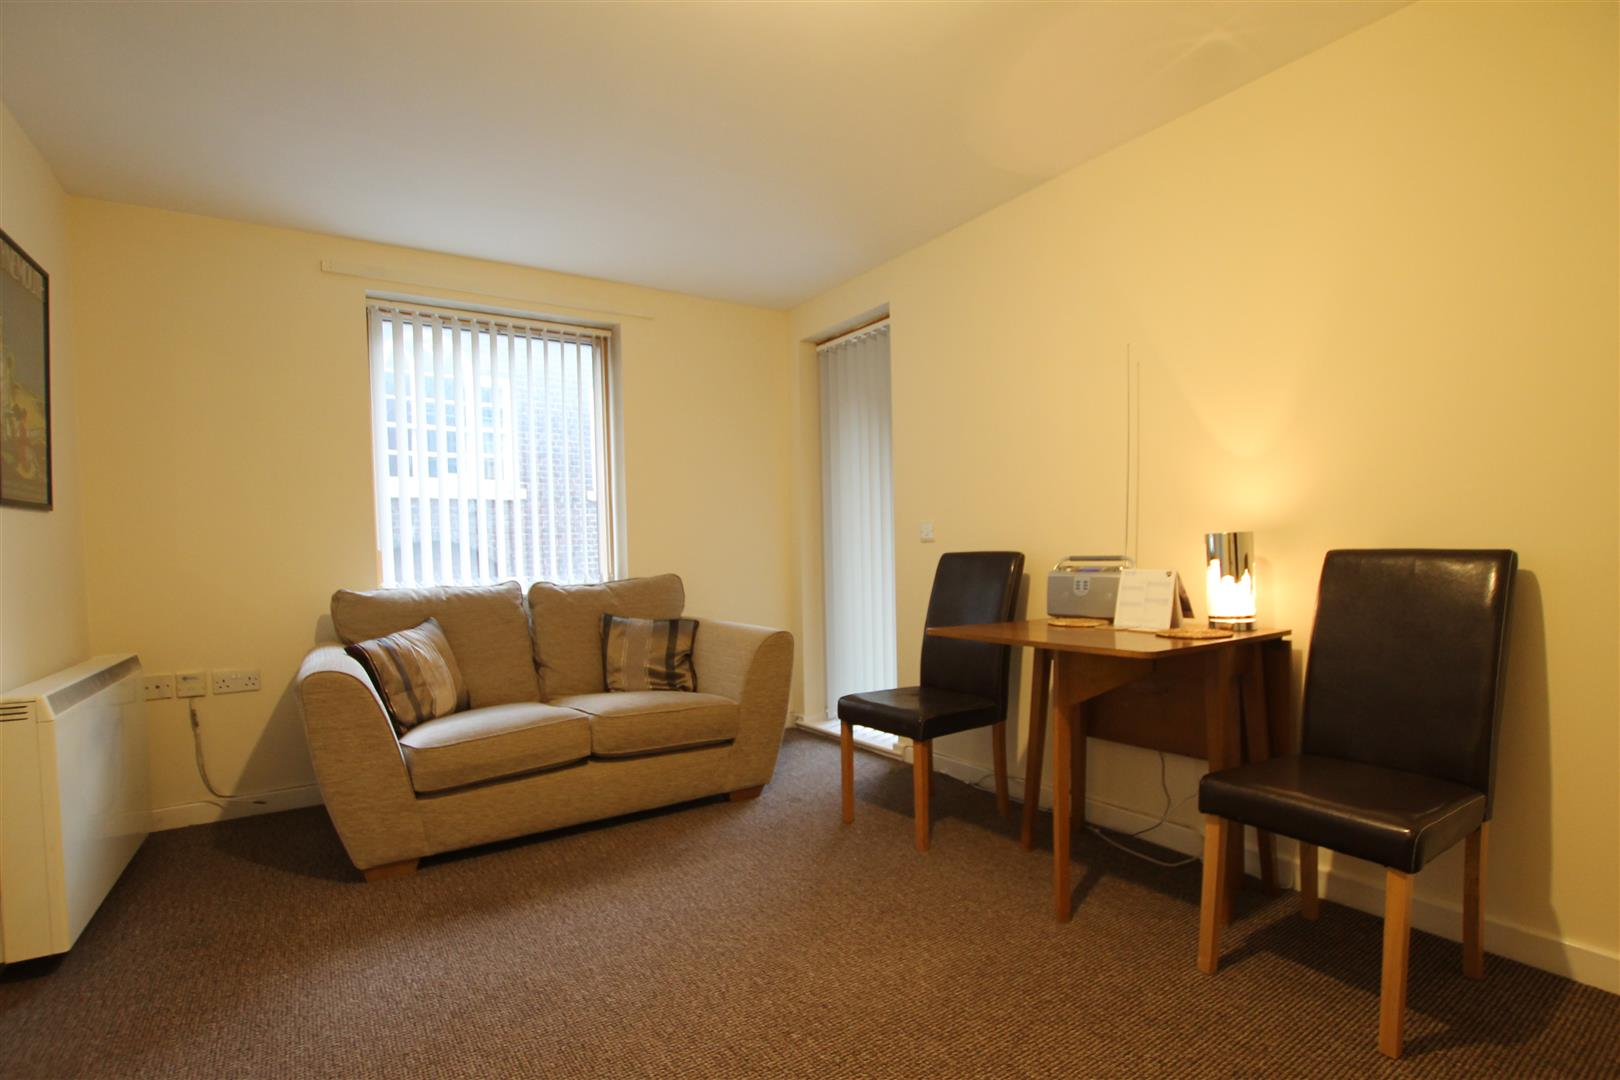 Parrish View Newcastle Upon Tyne, 2 Bedrooms  Apartment - purpose built ,Sold (STC)